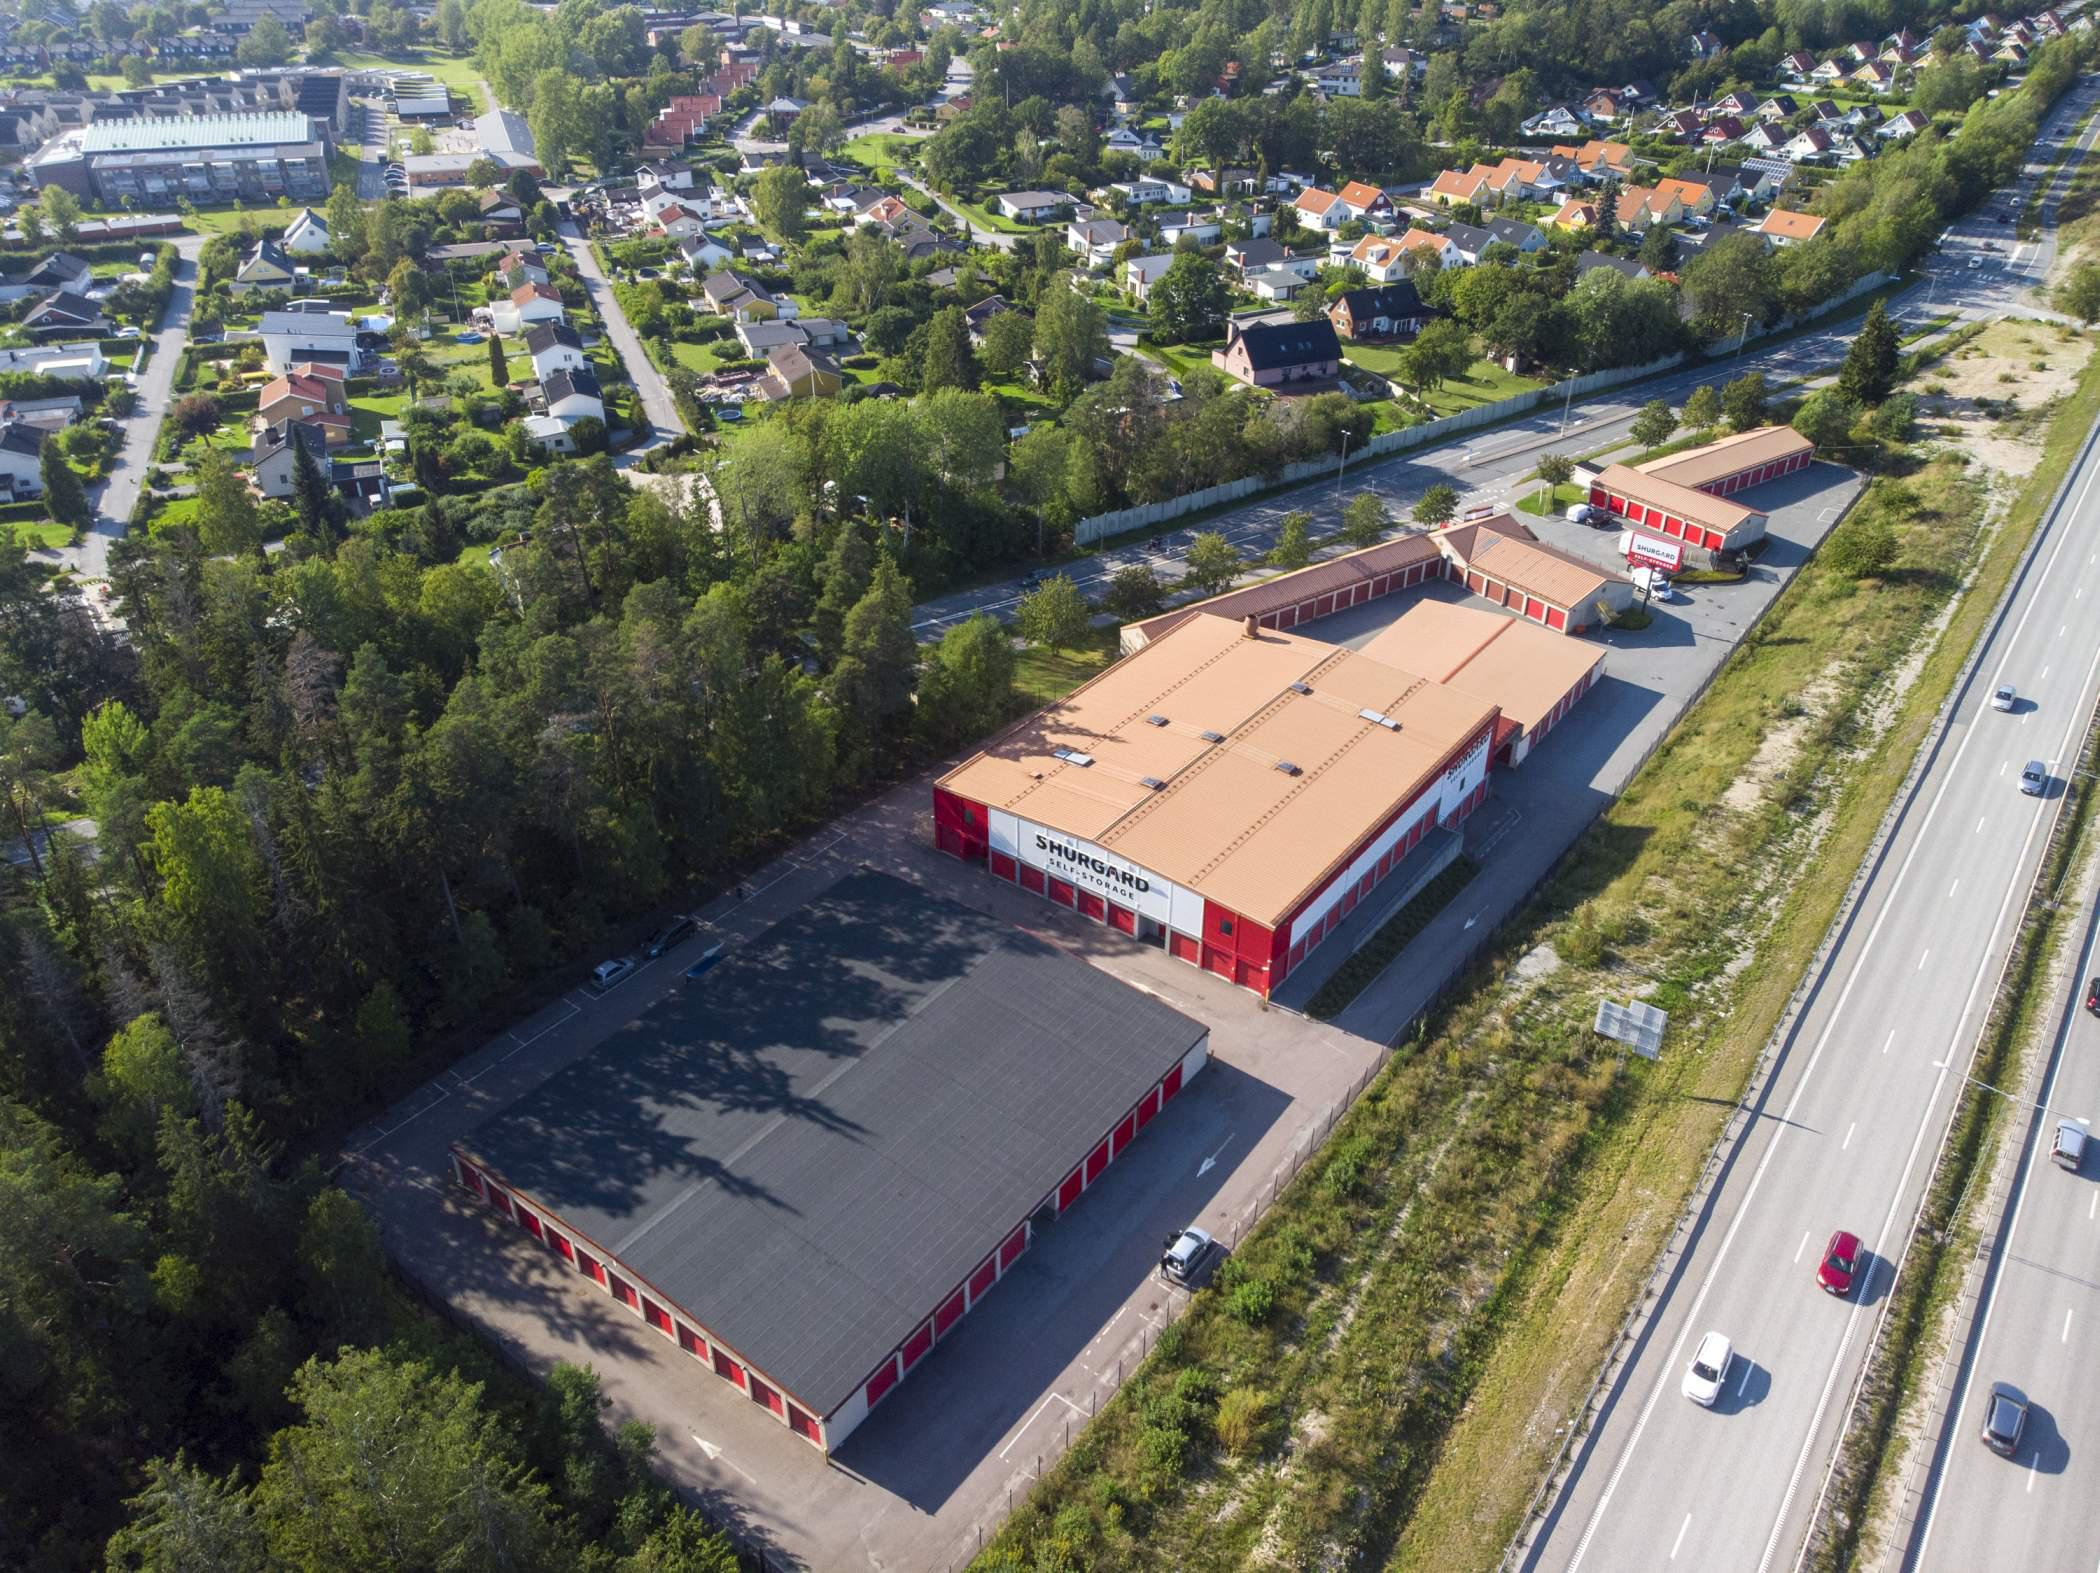 Shurgard Self-Storage Jakobsberg